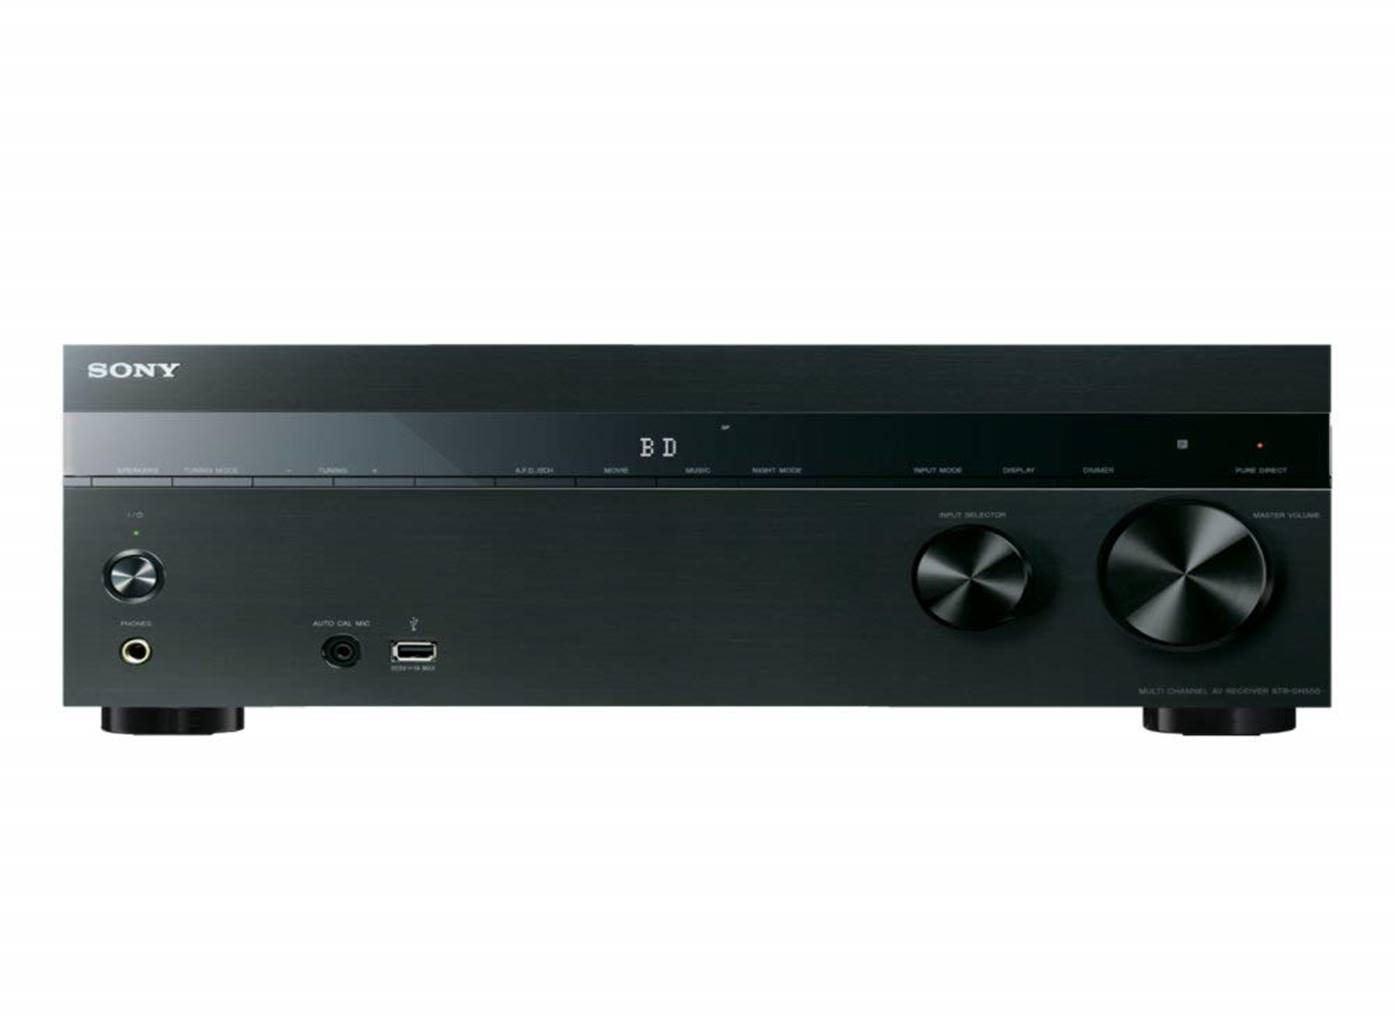 Sony STRDH550 Surround Sound Receiver